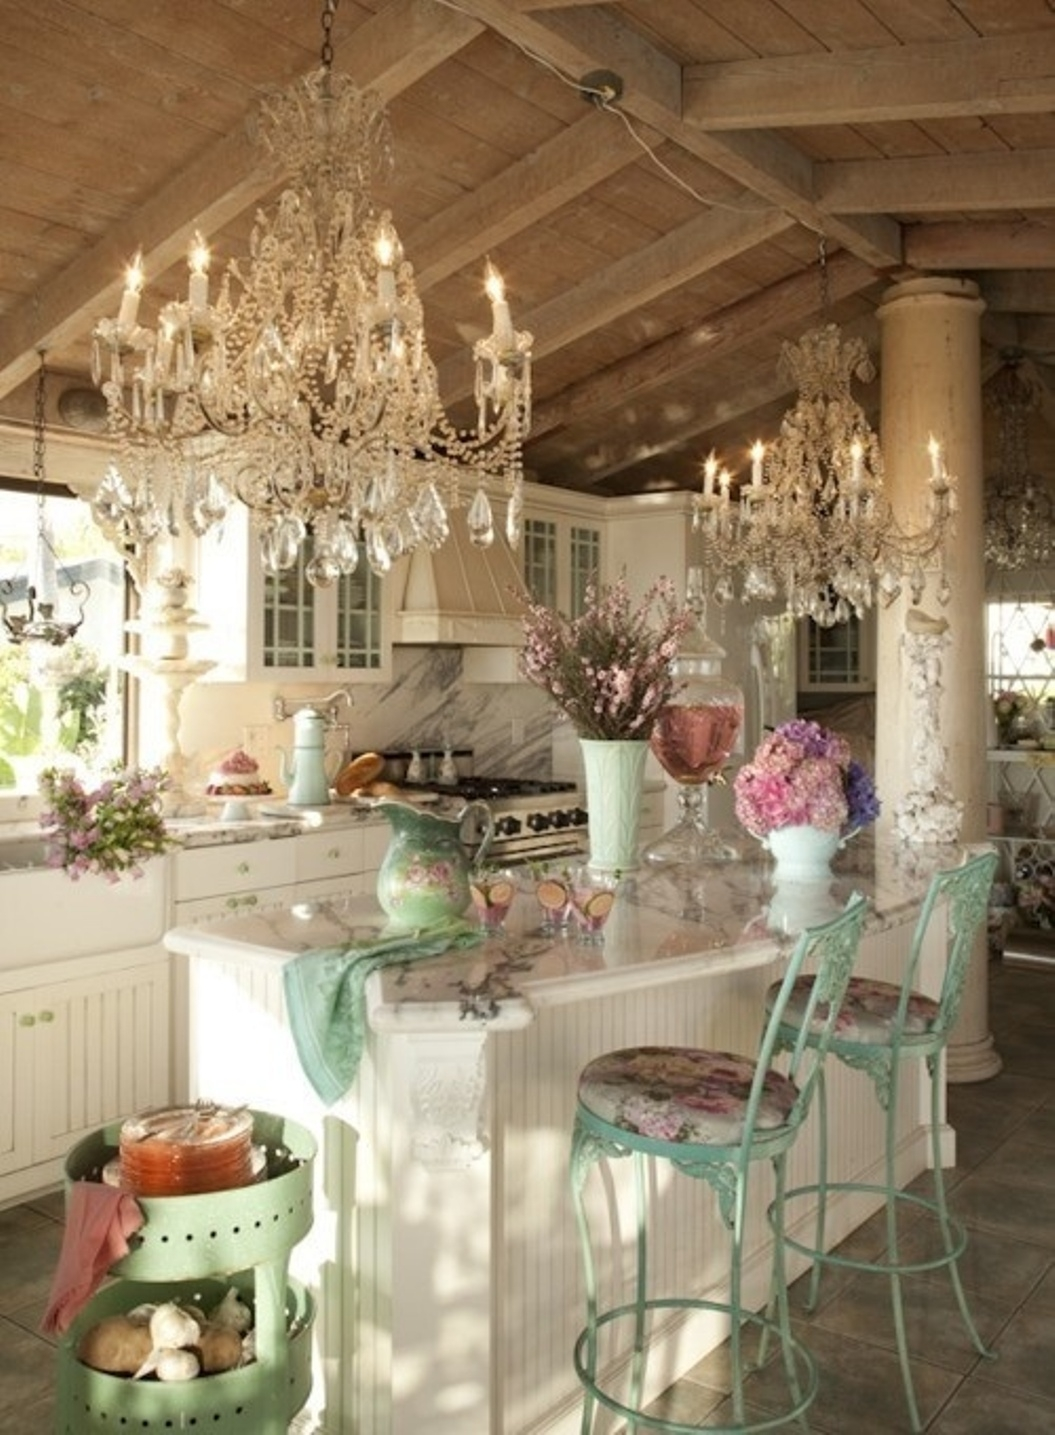 25 Charming Shab Chic Style Kitchen Designs Shab Chic Blue With Regard To Country Chic Chandelier (Image 3 of 15)